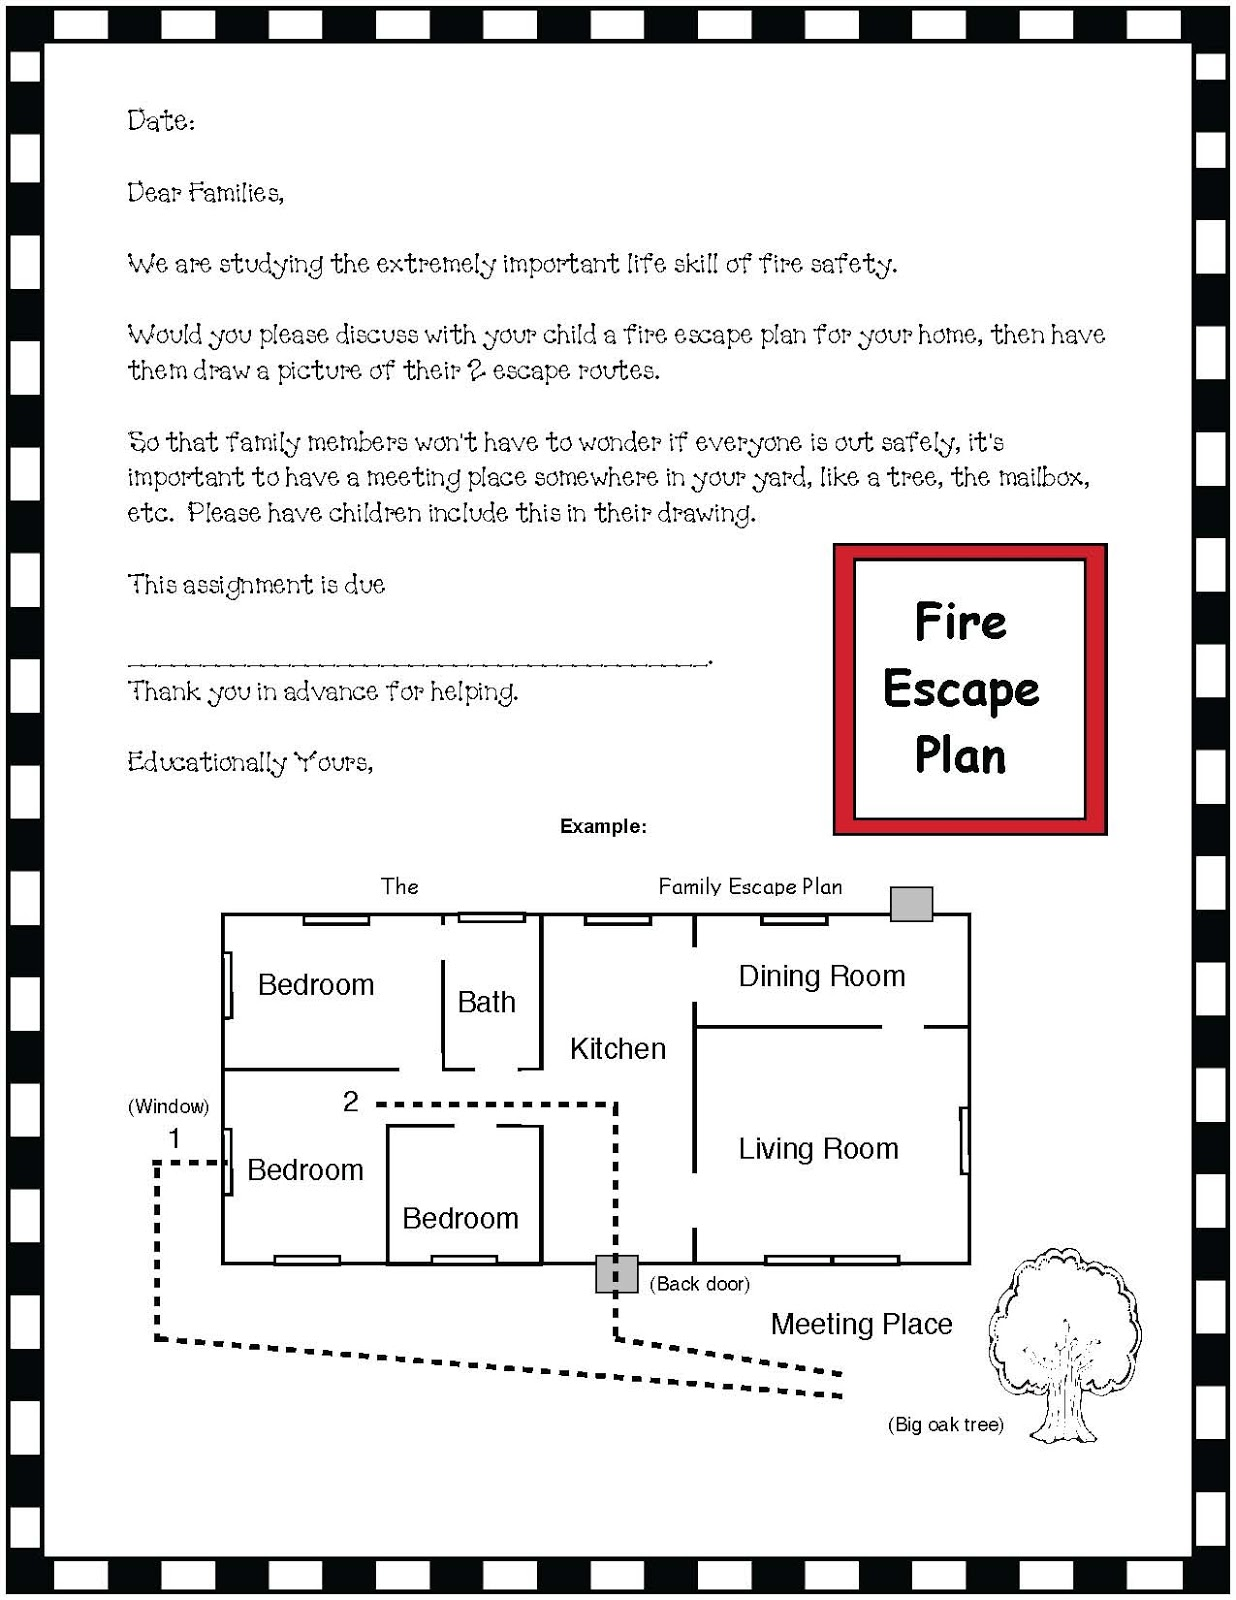 Fire safety plan classroom freebies for Fire escape plan worksheet